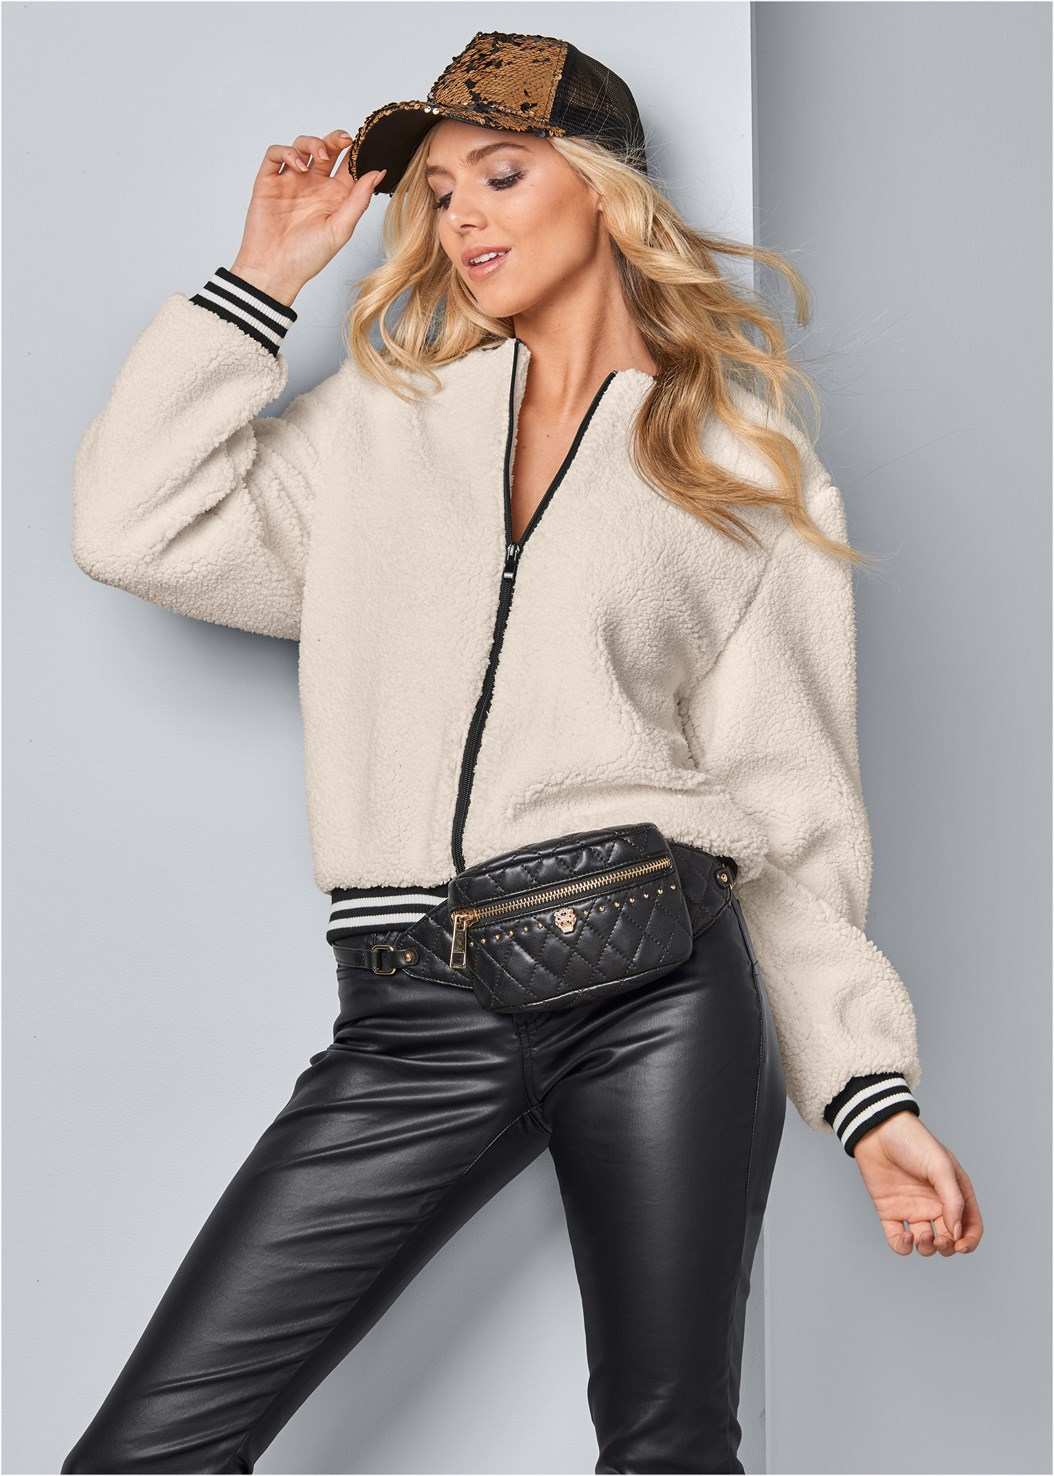 Faux Fur Bomber Jacket,Faux Leather Pants,Kissable Strappy Push Up,Quilted Belt Bag,Fringe Scarf